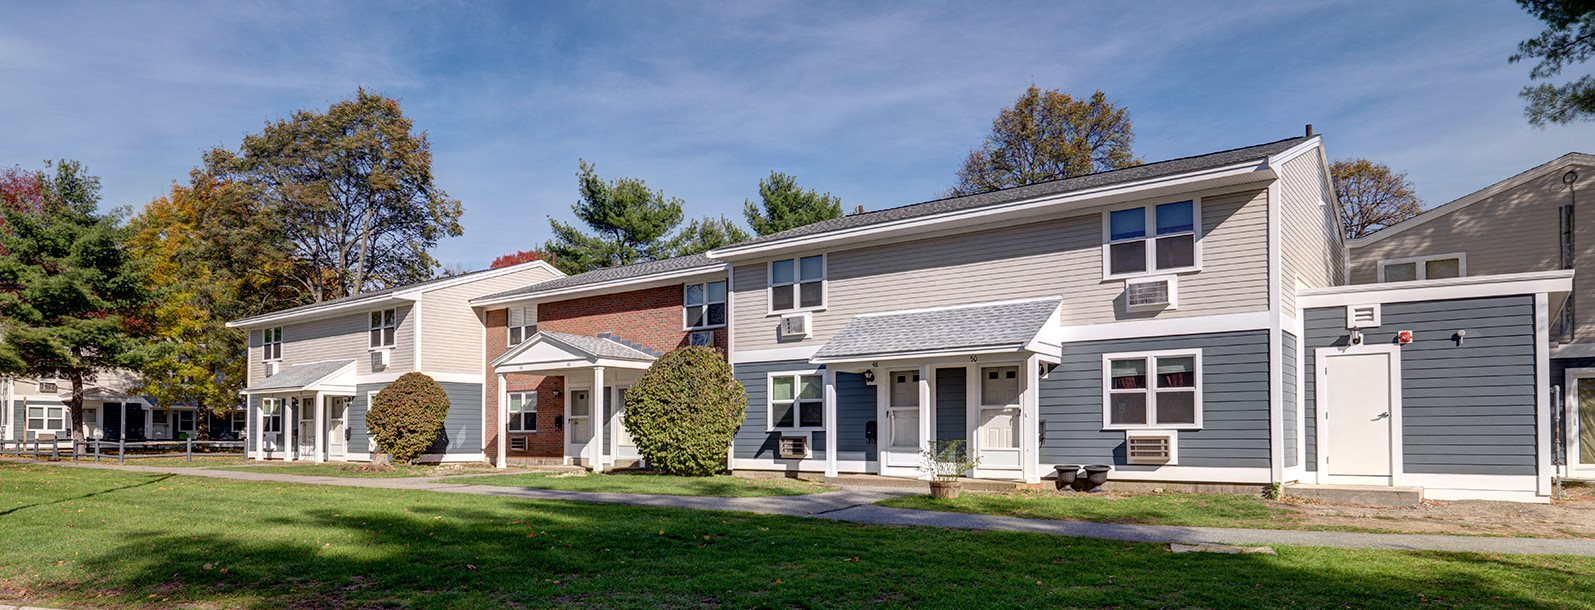 Georgetowne Homes Apartments In Hyde Park Ma